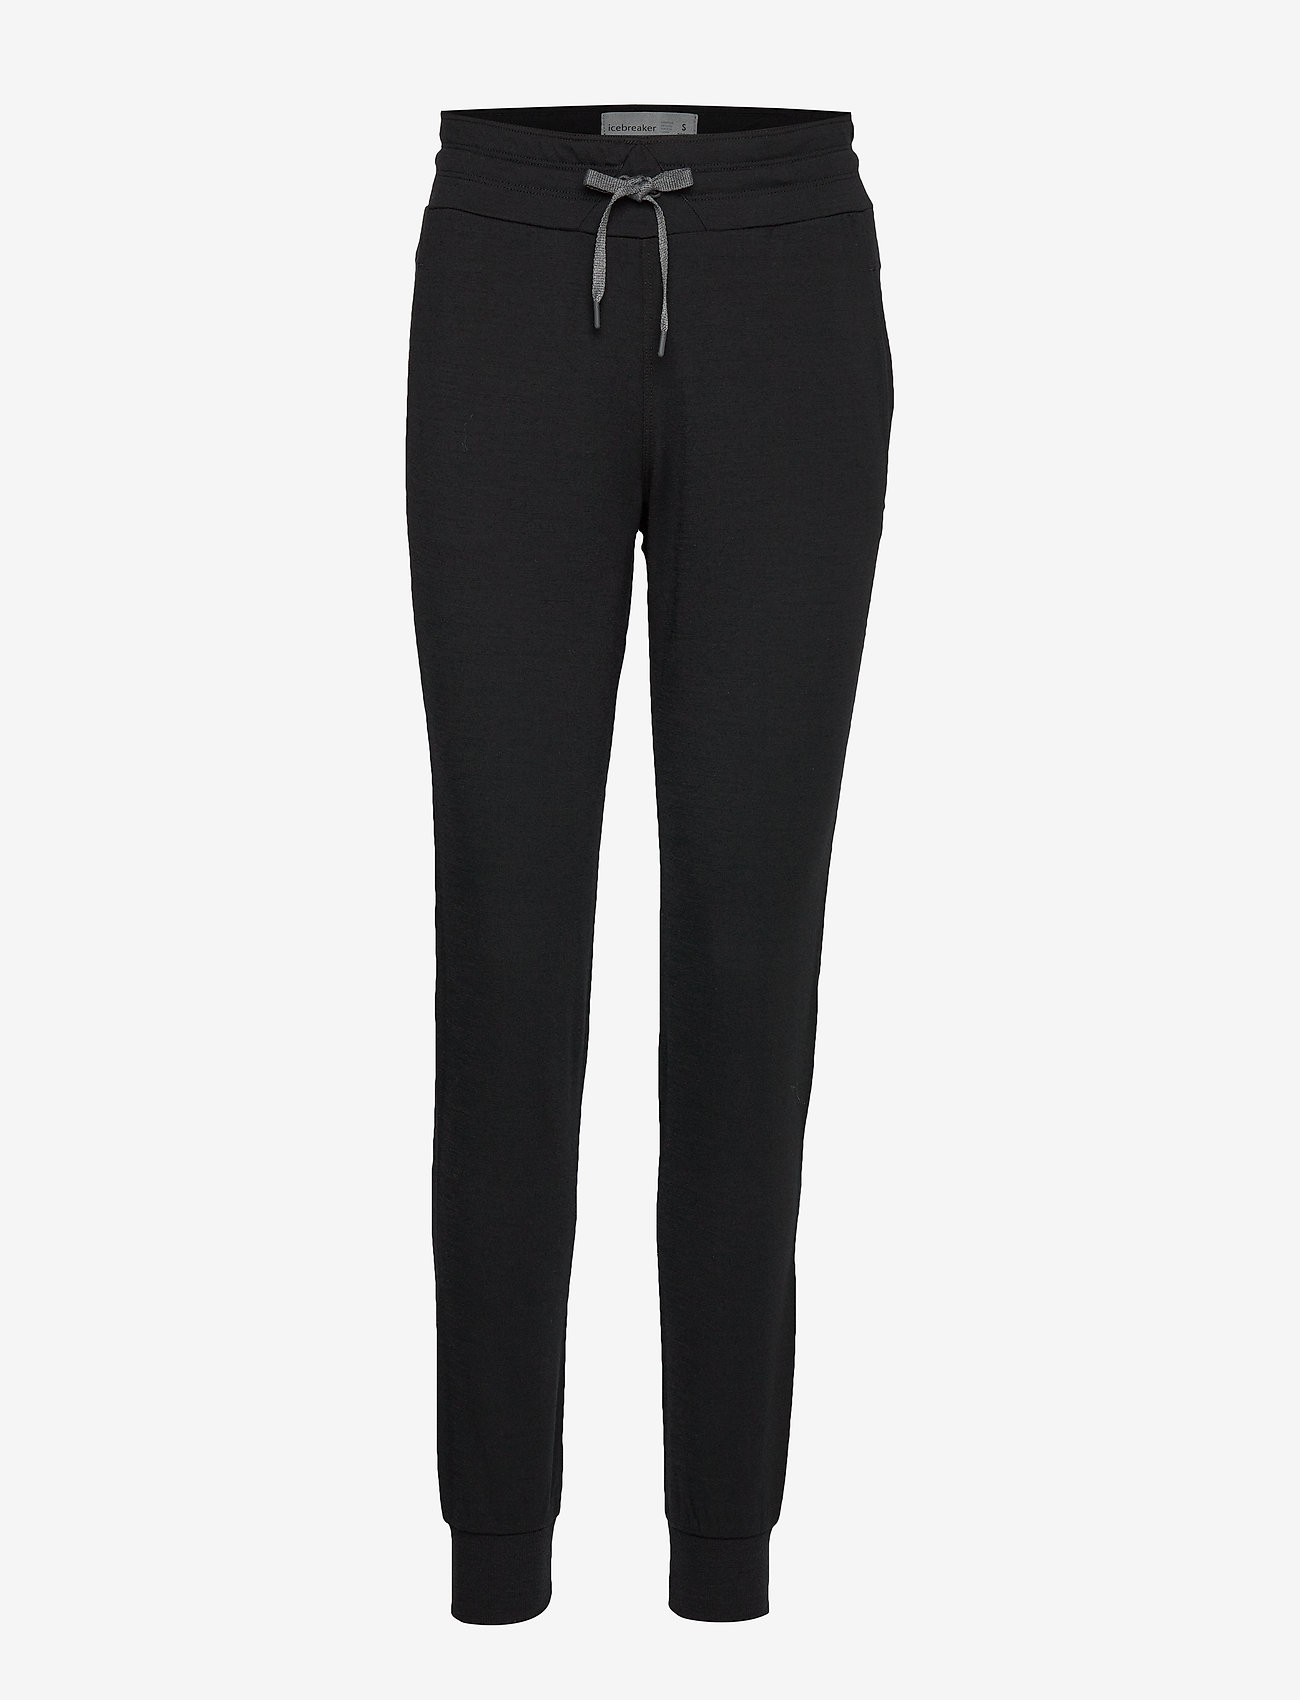 Icebreaker - Wmns Crush Pants - pants - black - 0